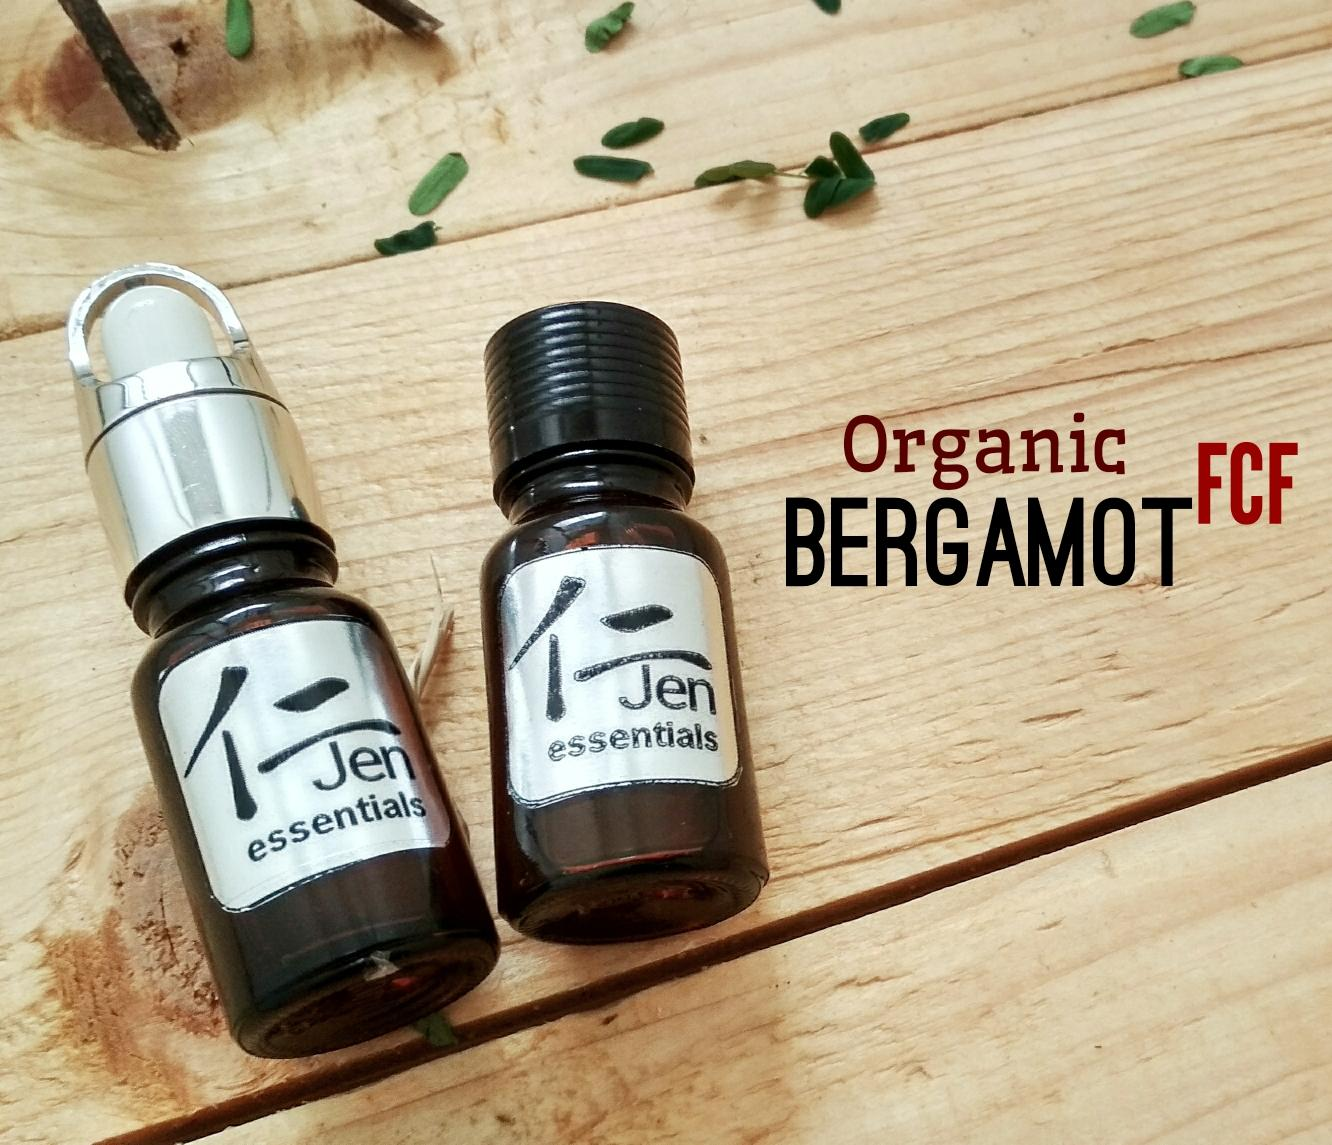 Buy Sell Cheapest Organic Essential Oil Best Quality Product Deals Bubble Bath Foam Aromatherapy Pure French Lavender Rose Jen 20ml Bergamot Fcf Food Grade Therapeutic